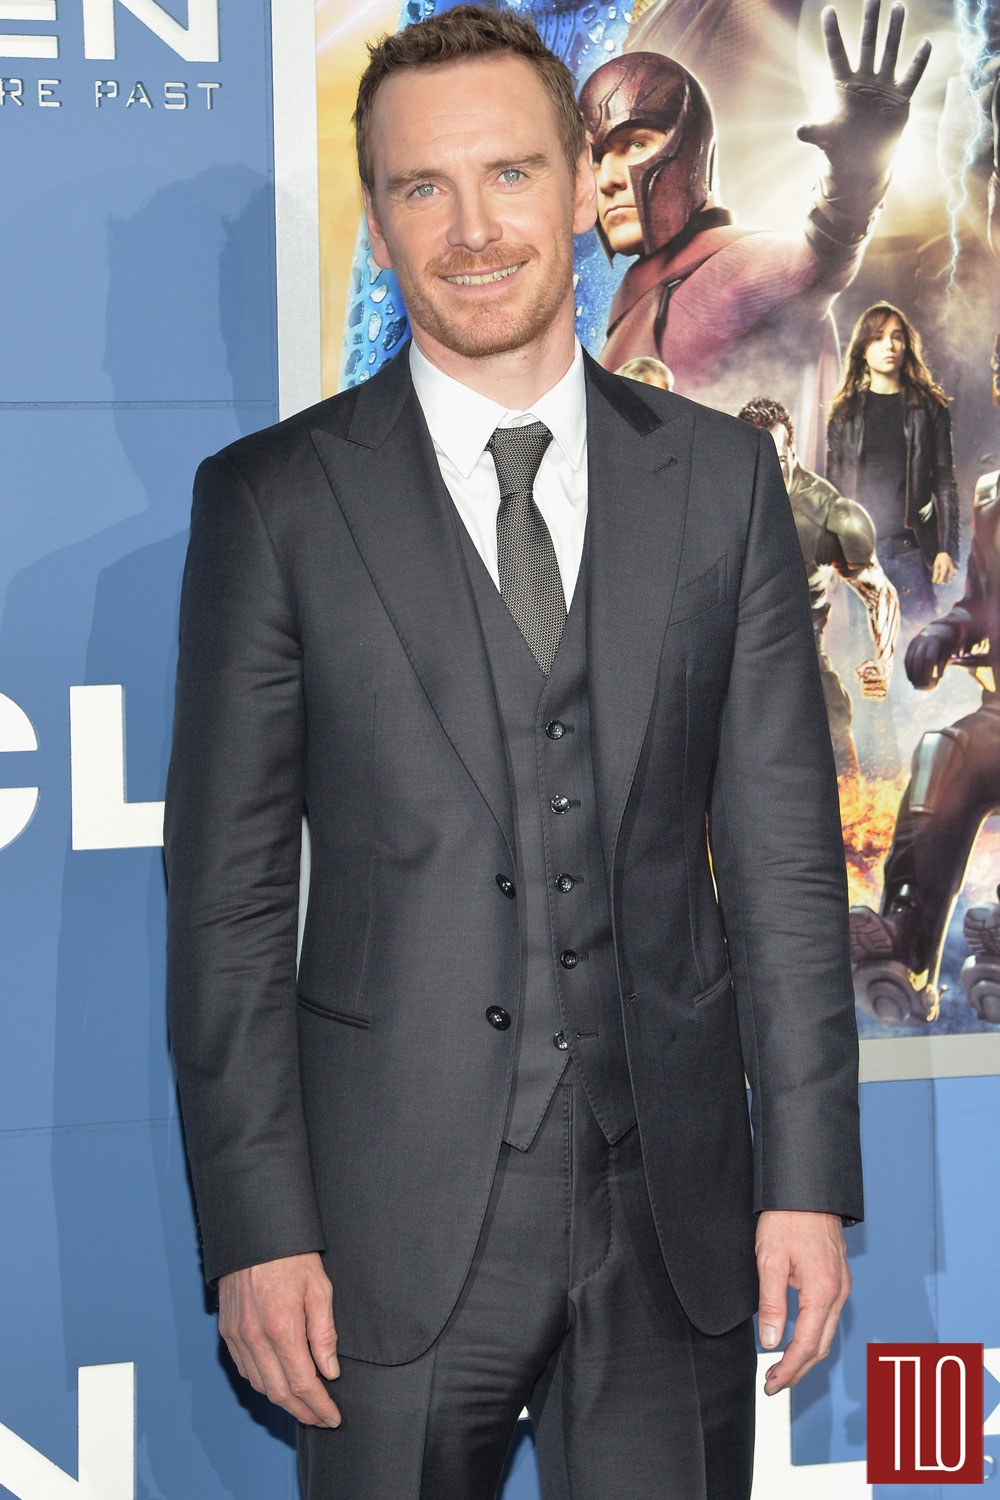 Michael-Fassbender-X-Men-Days-Future-Past-New-York-City-Premiere-Giorgio-Armani-Tom-Lorenzo-Site-TLO (1)